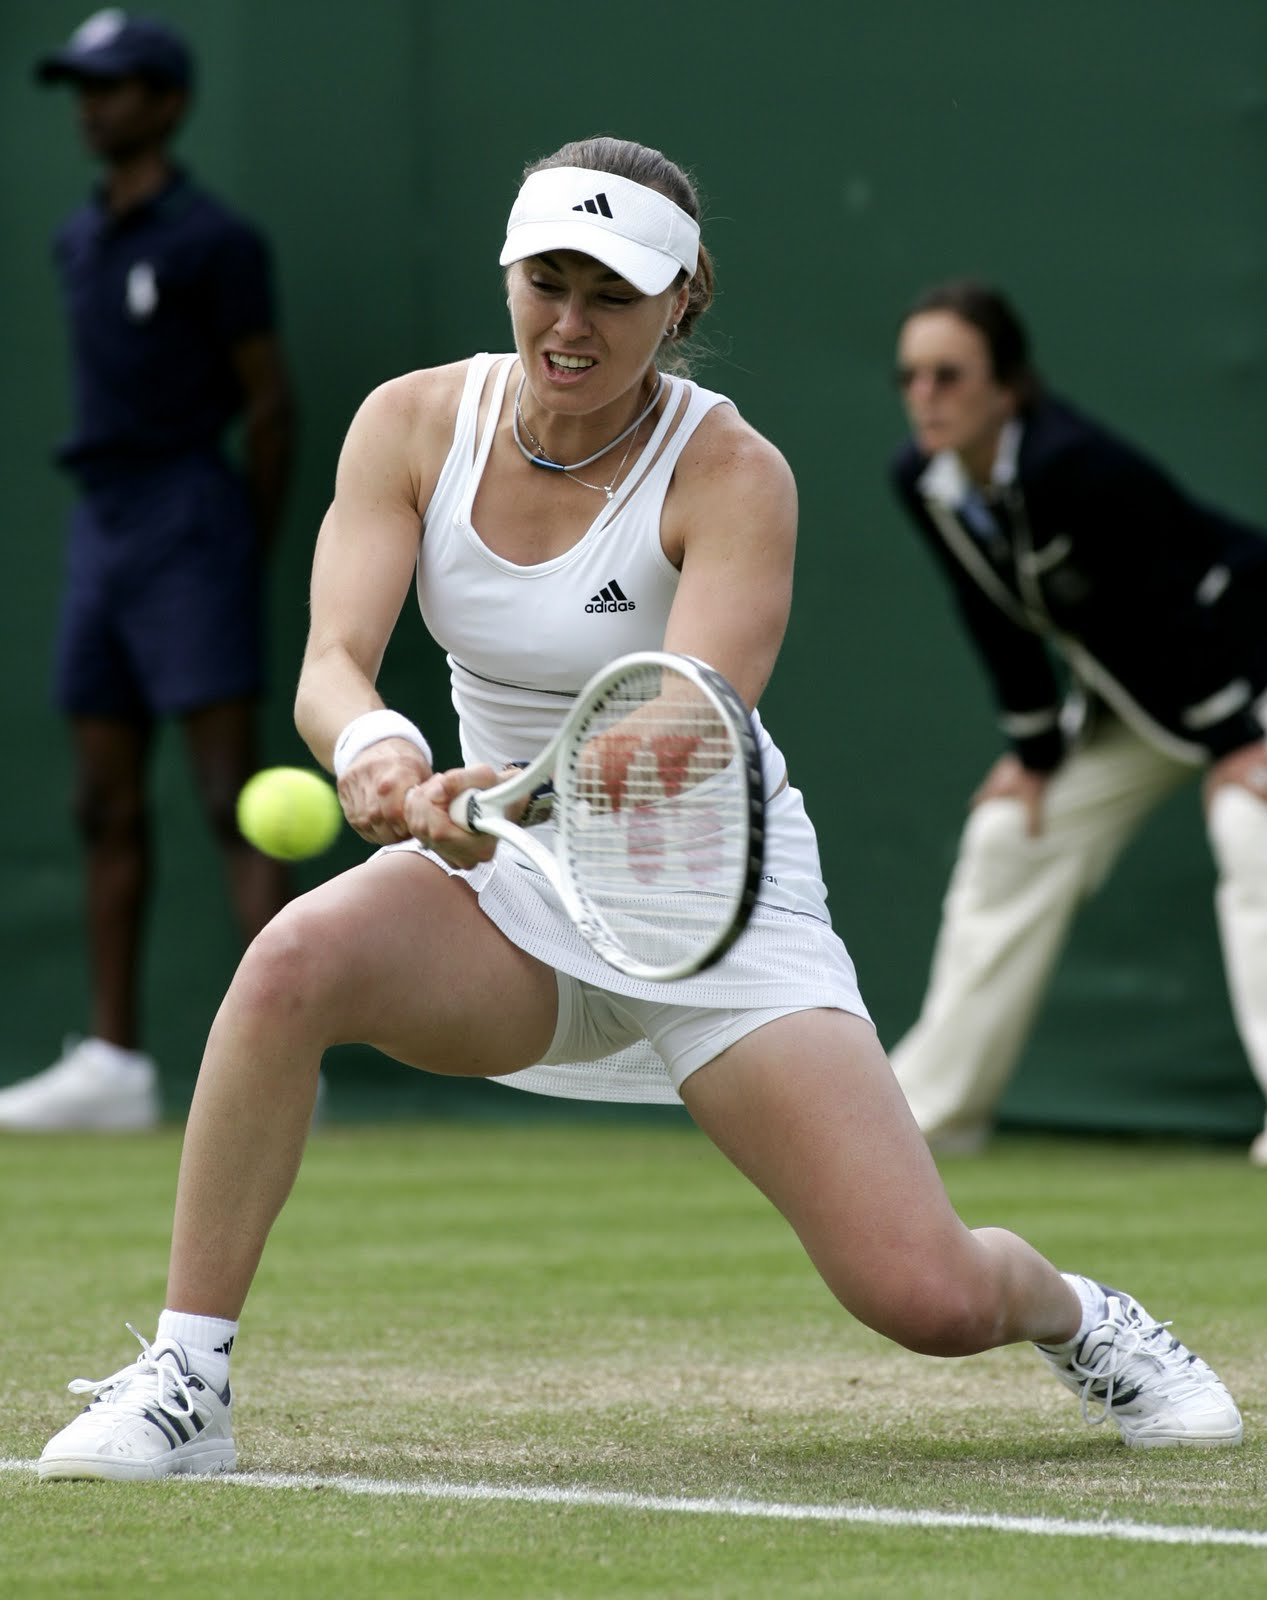 Understand martina hingis hot theme